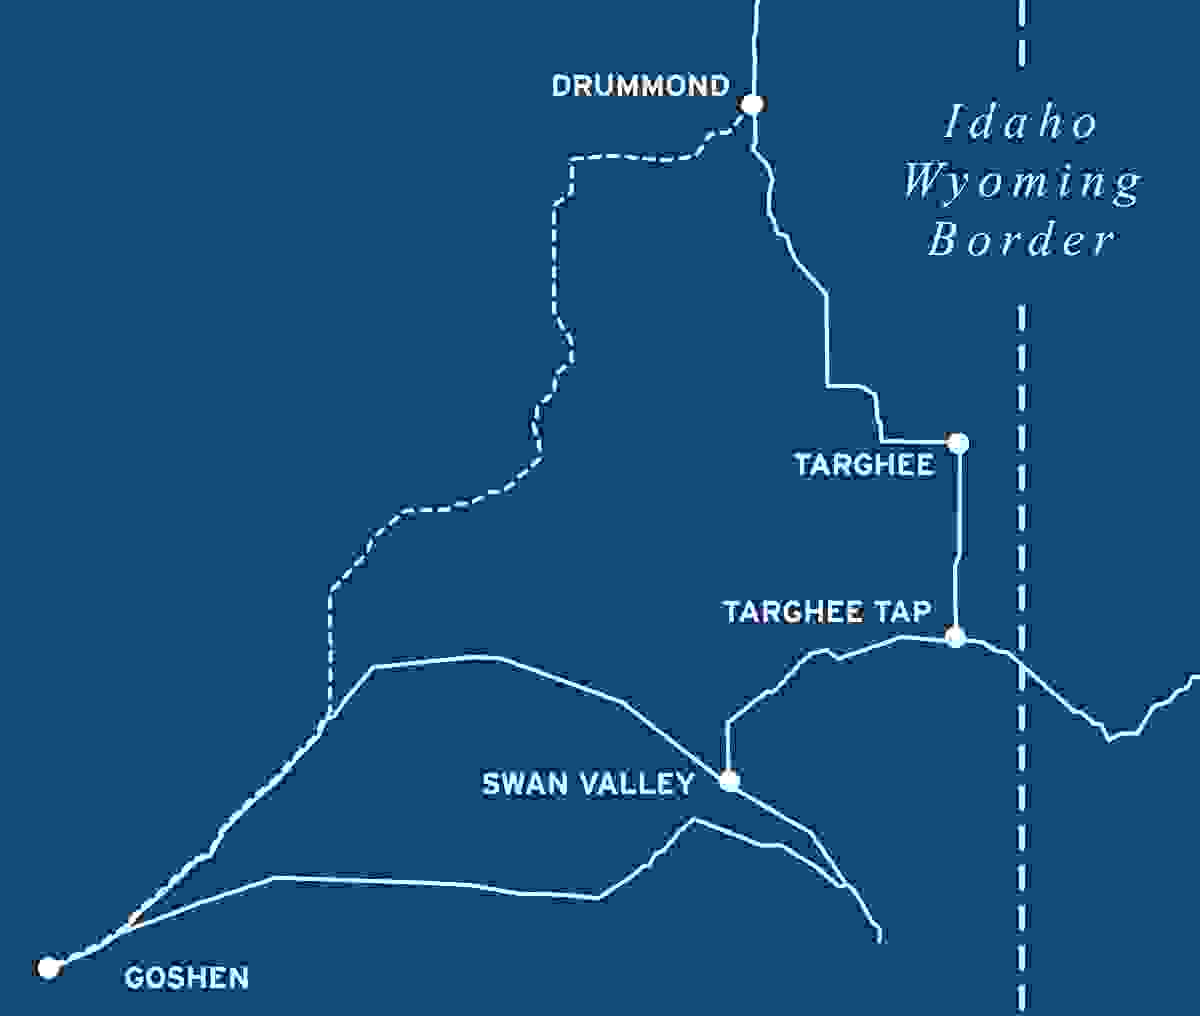 Goshen-Drummond Map